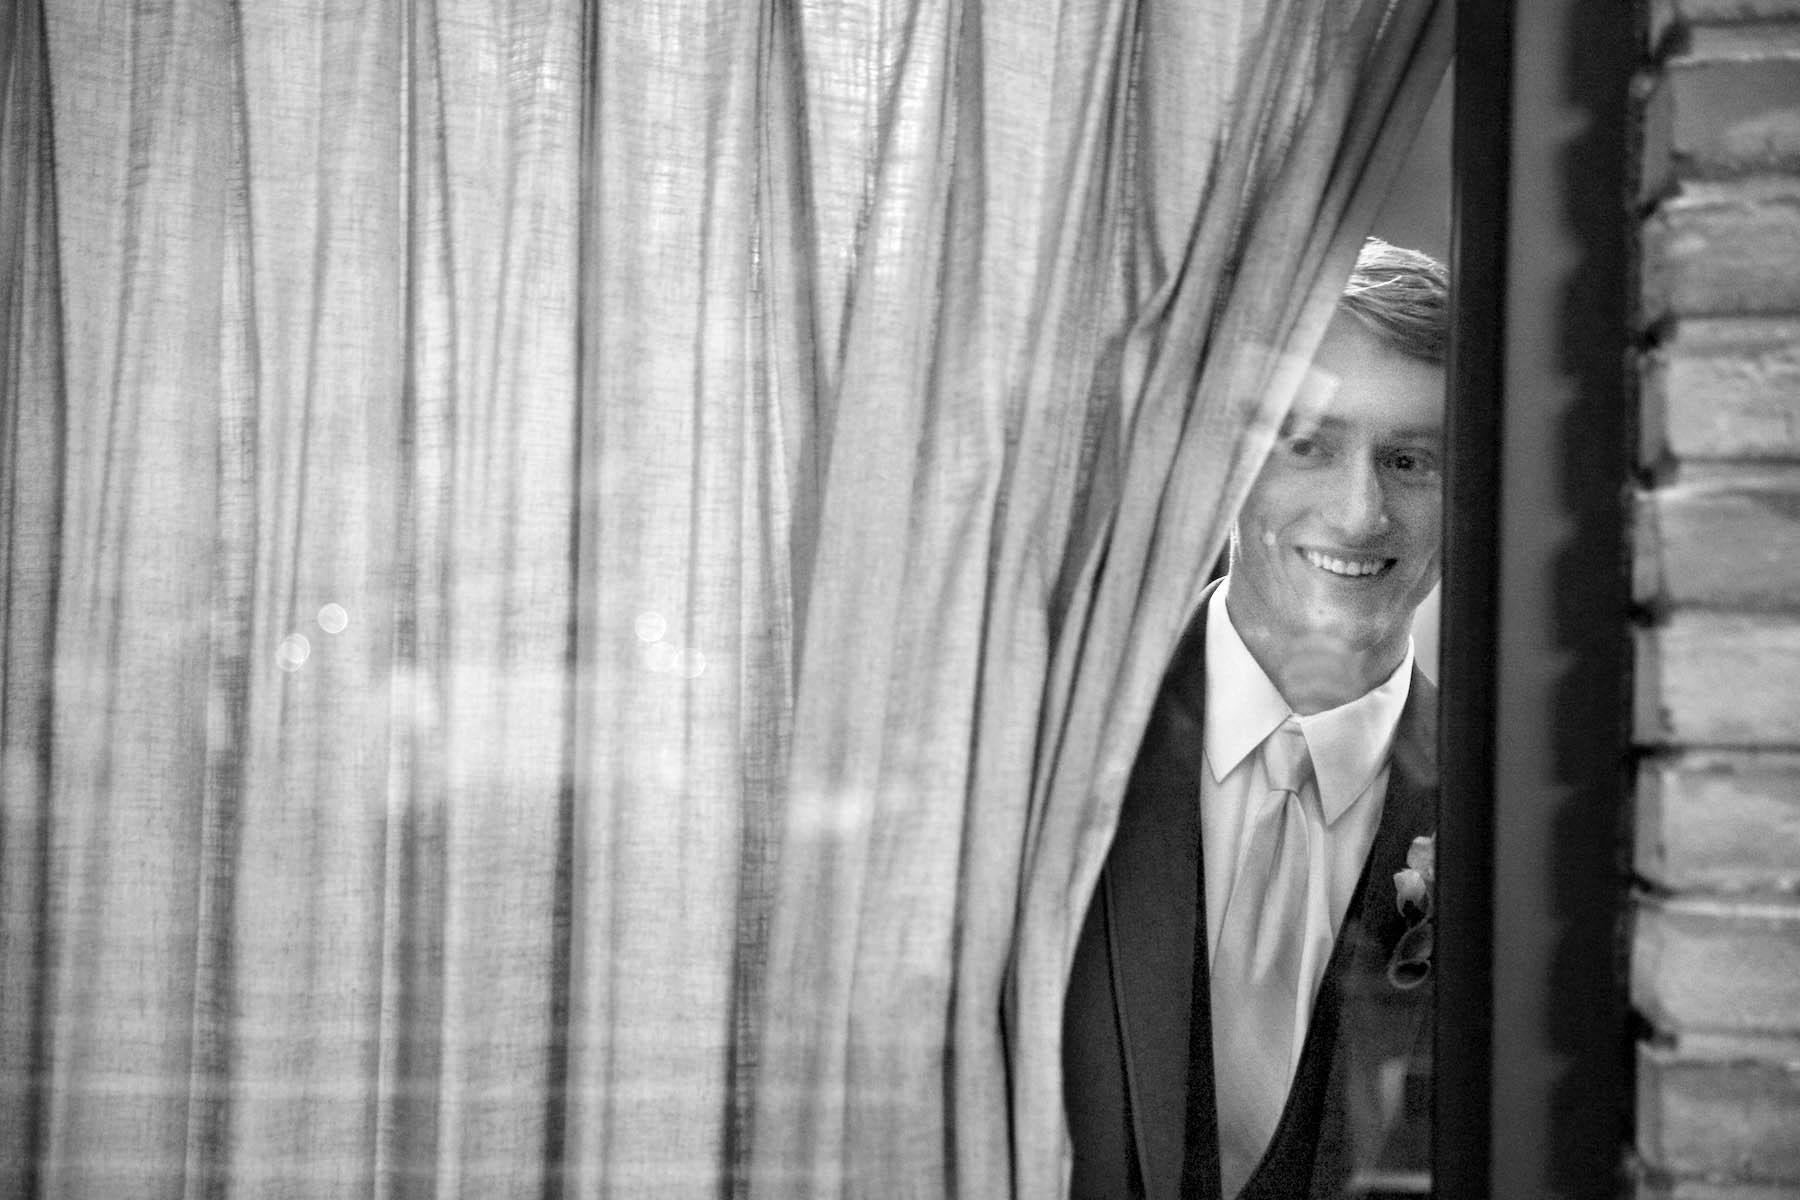 Brandon peeks out as he's sequestered in the room before the ceremony with his groomsmen. Ceremony at Our Saviour Catholic Church, Jacksonville. Wedding photography by Tiffany & Steve Warmowski.